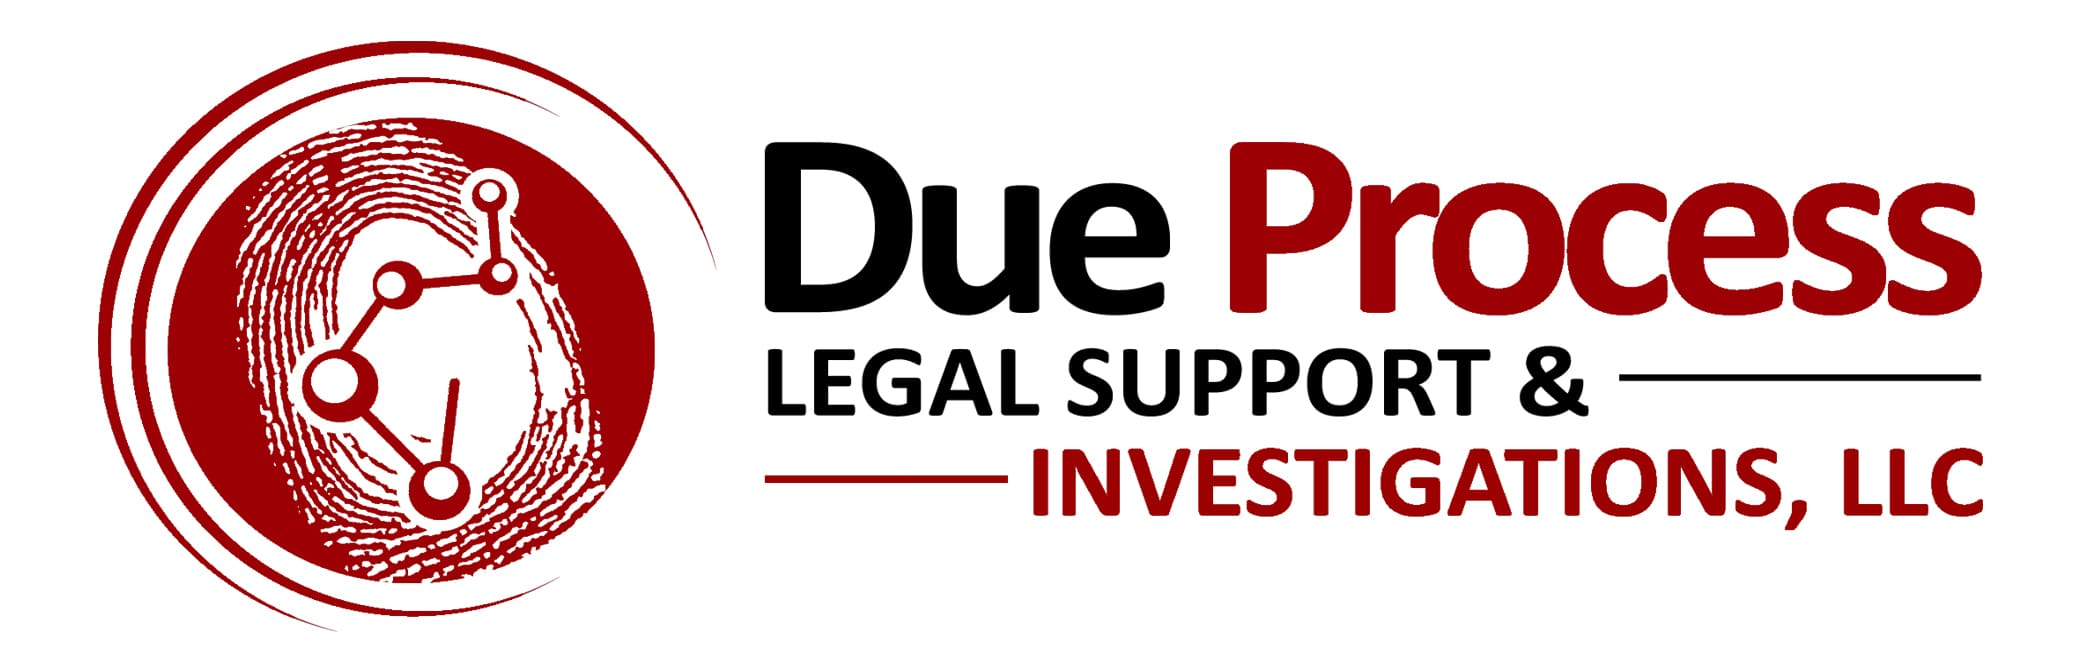 Due Process Investigations